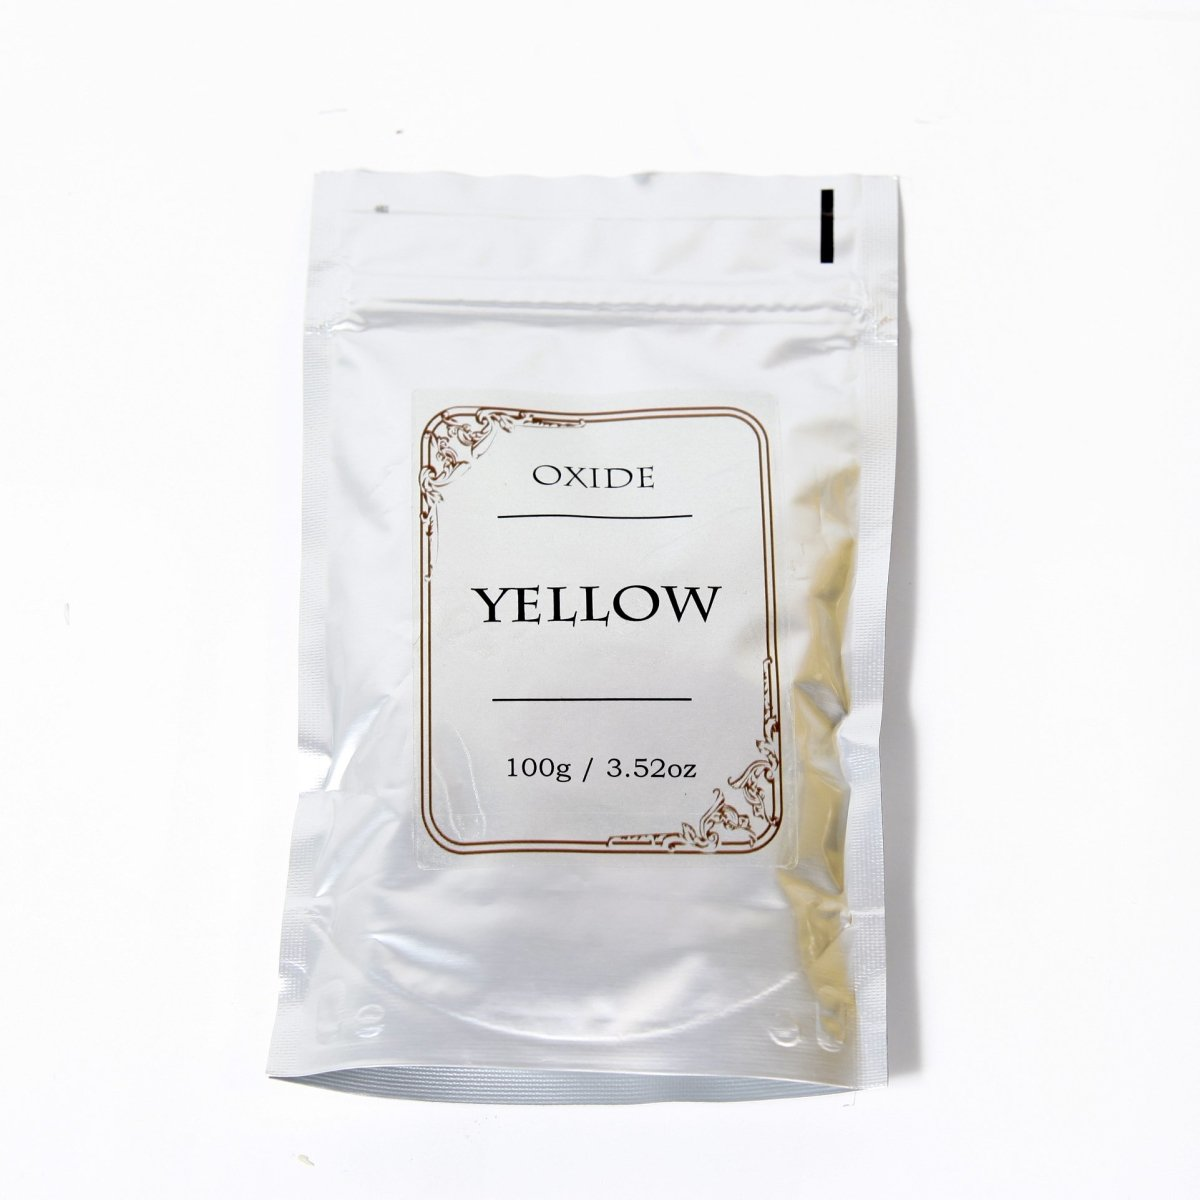 Yellow Oxide Mineral Powder - Mystic Moments UK